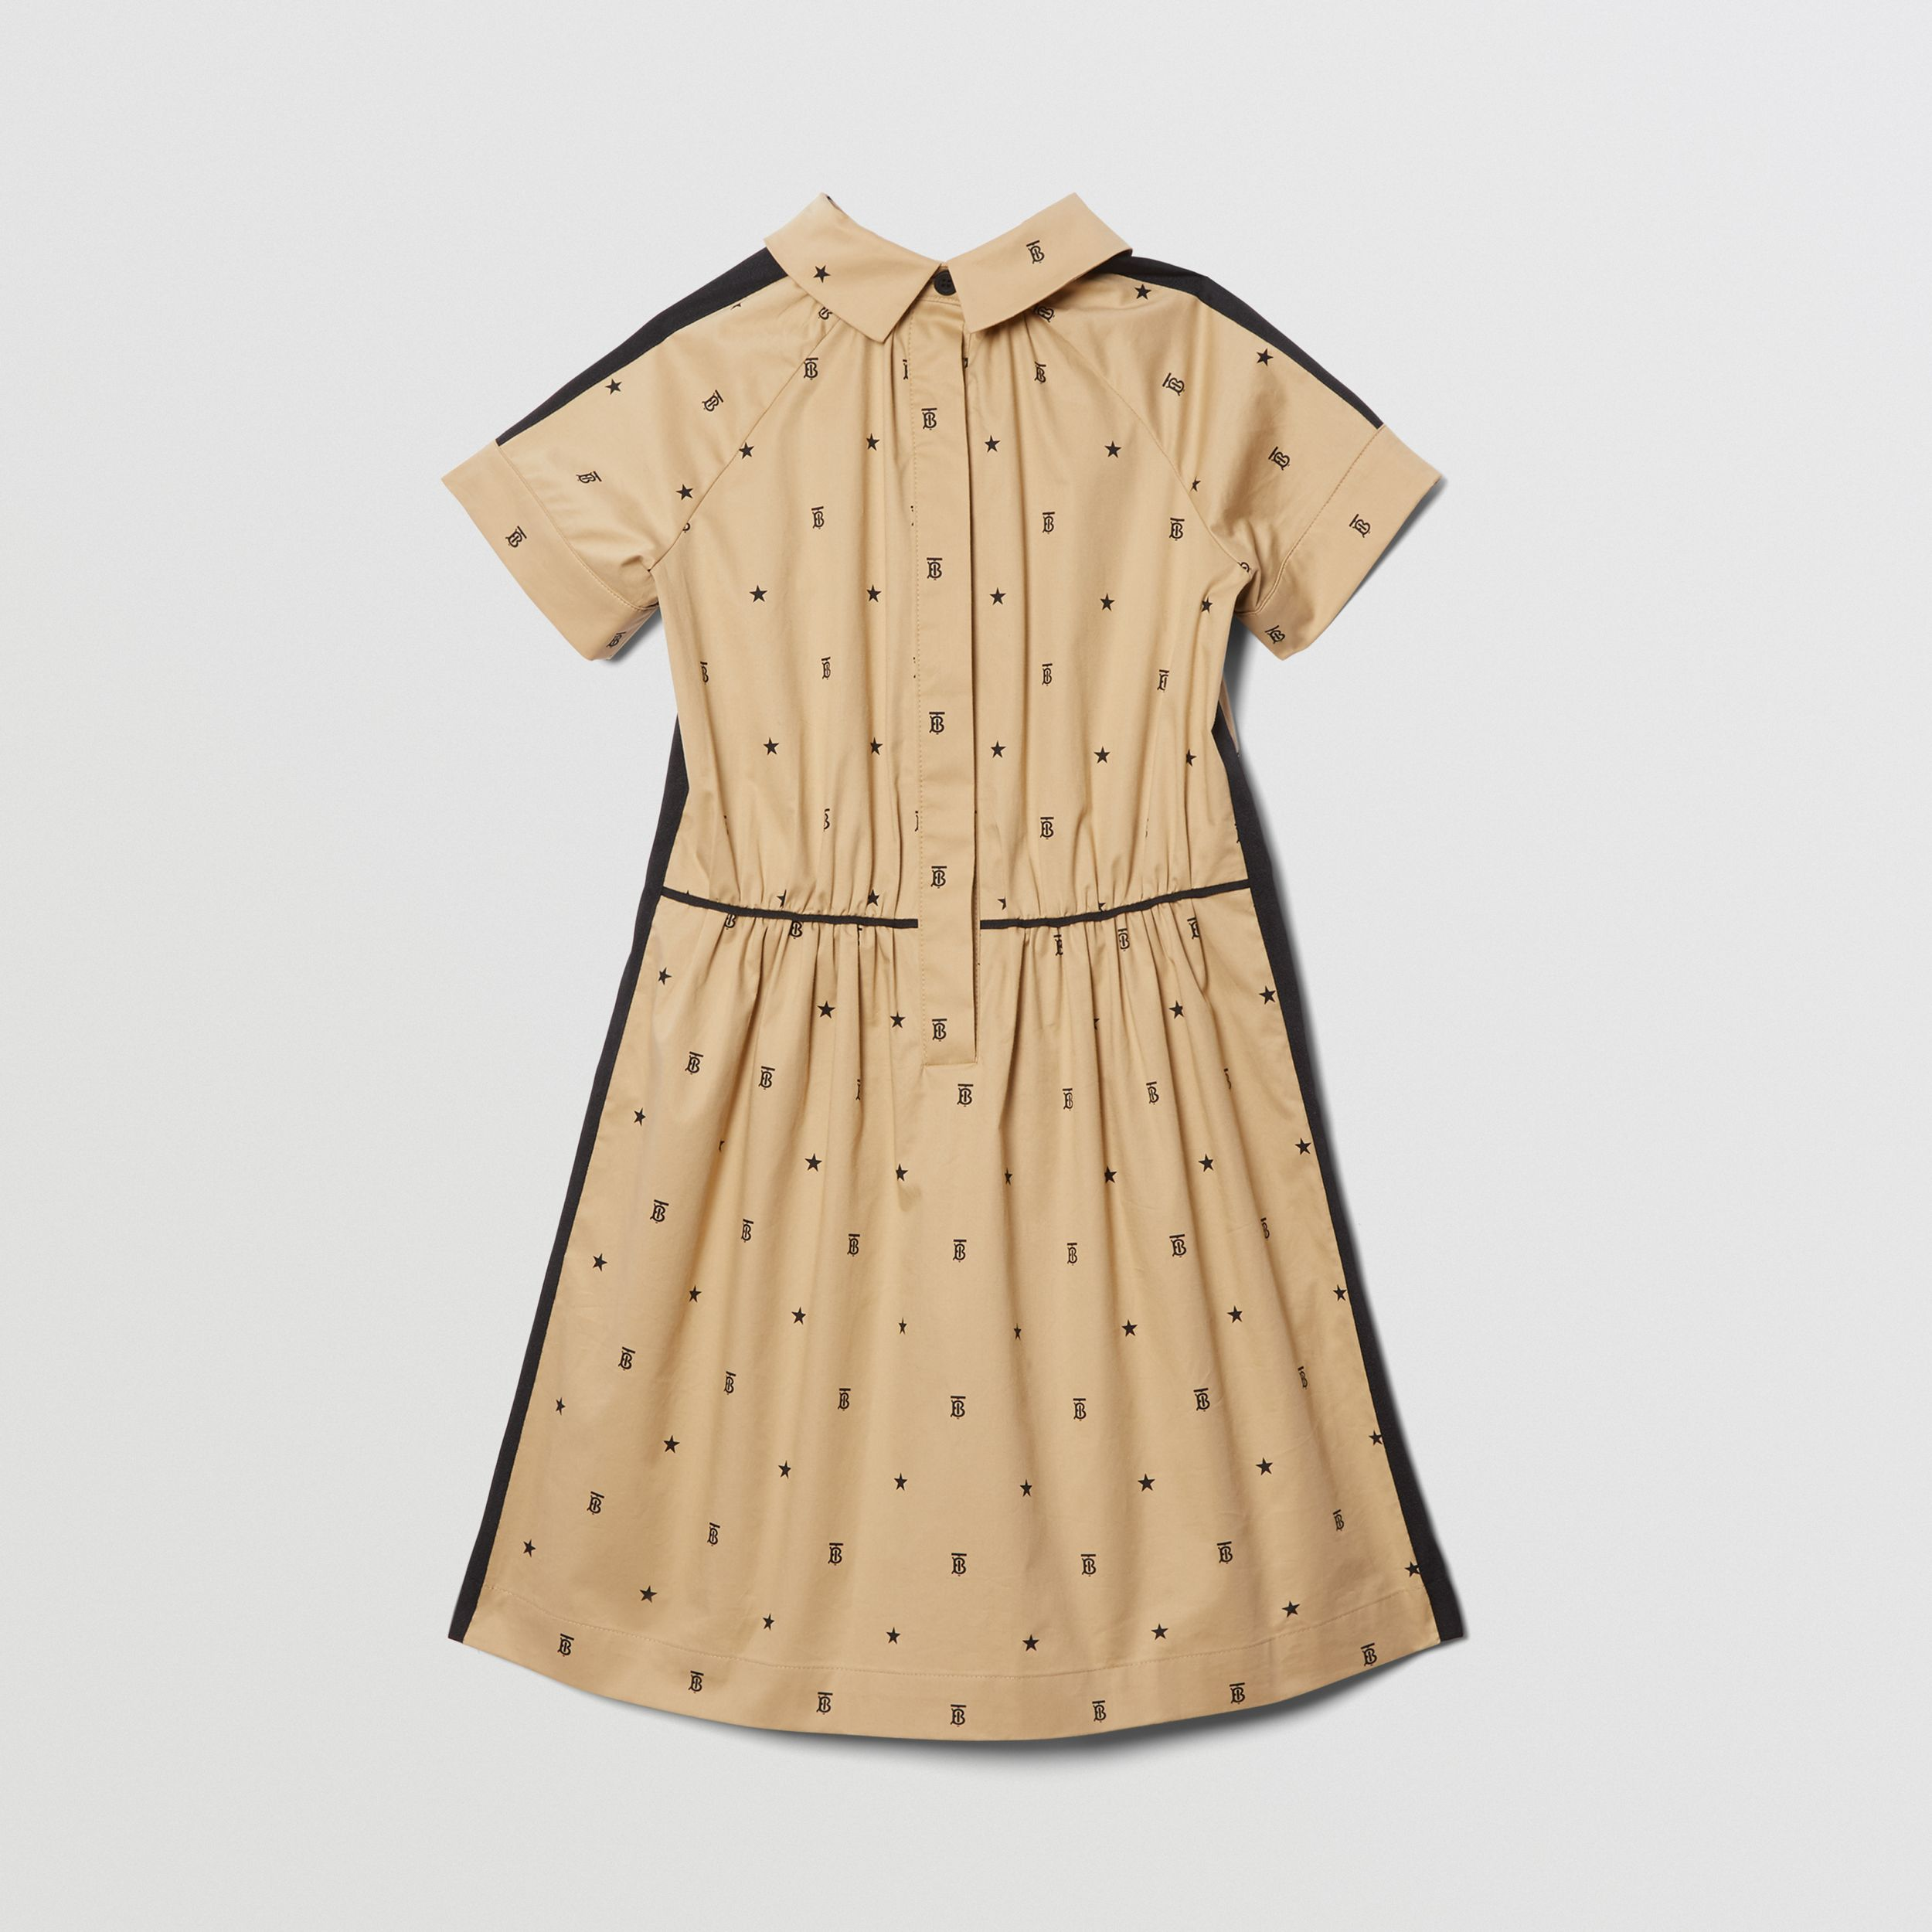 Star and Monogram Motif Stretch Cotton Dress in Sand | Burberry Hong Kong S.A.R. - 4